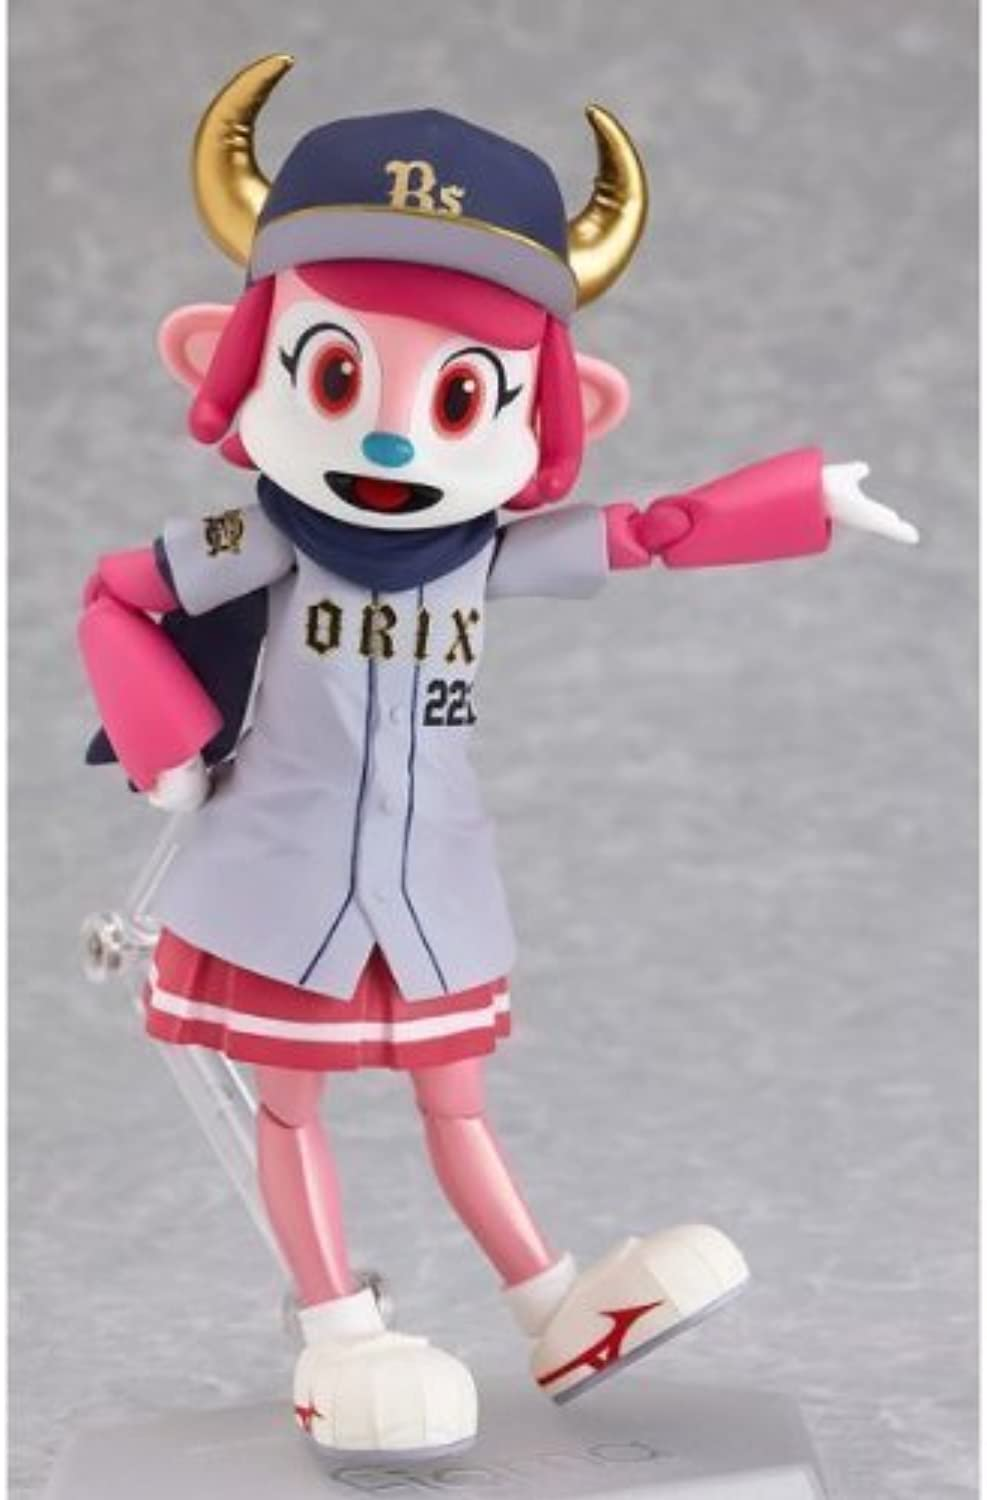 Figma Orix Buffaloes official mascot Buffalo Bell (non-scale ABS & PVC painted action figure) visitor ver. (japan import)